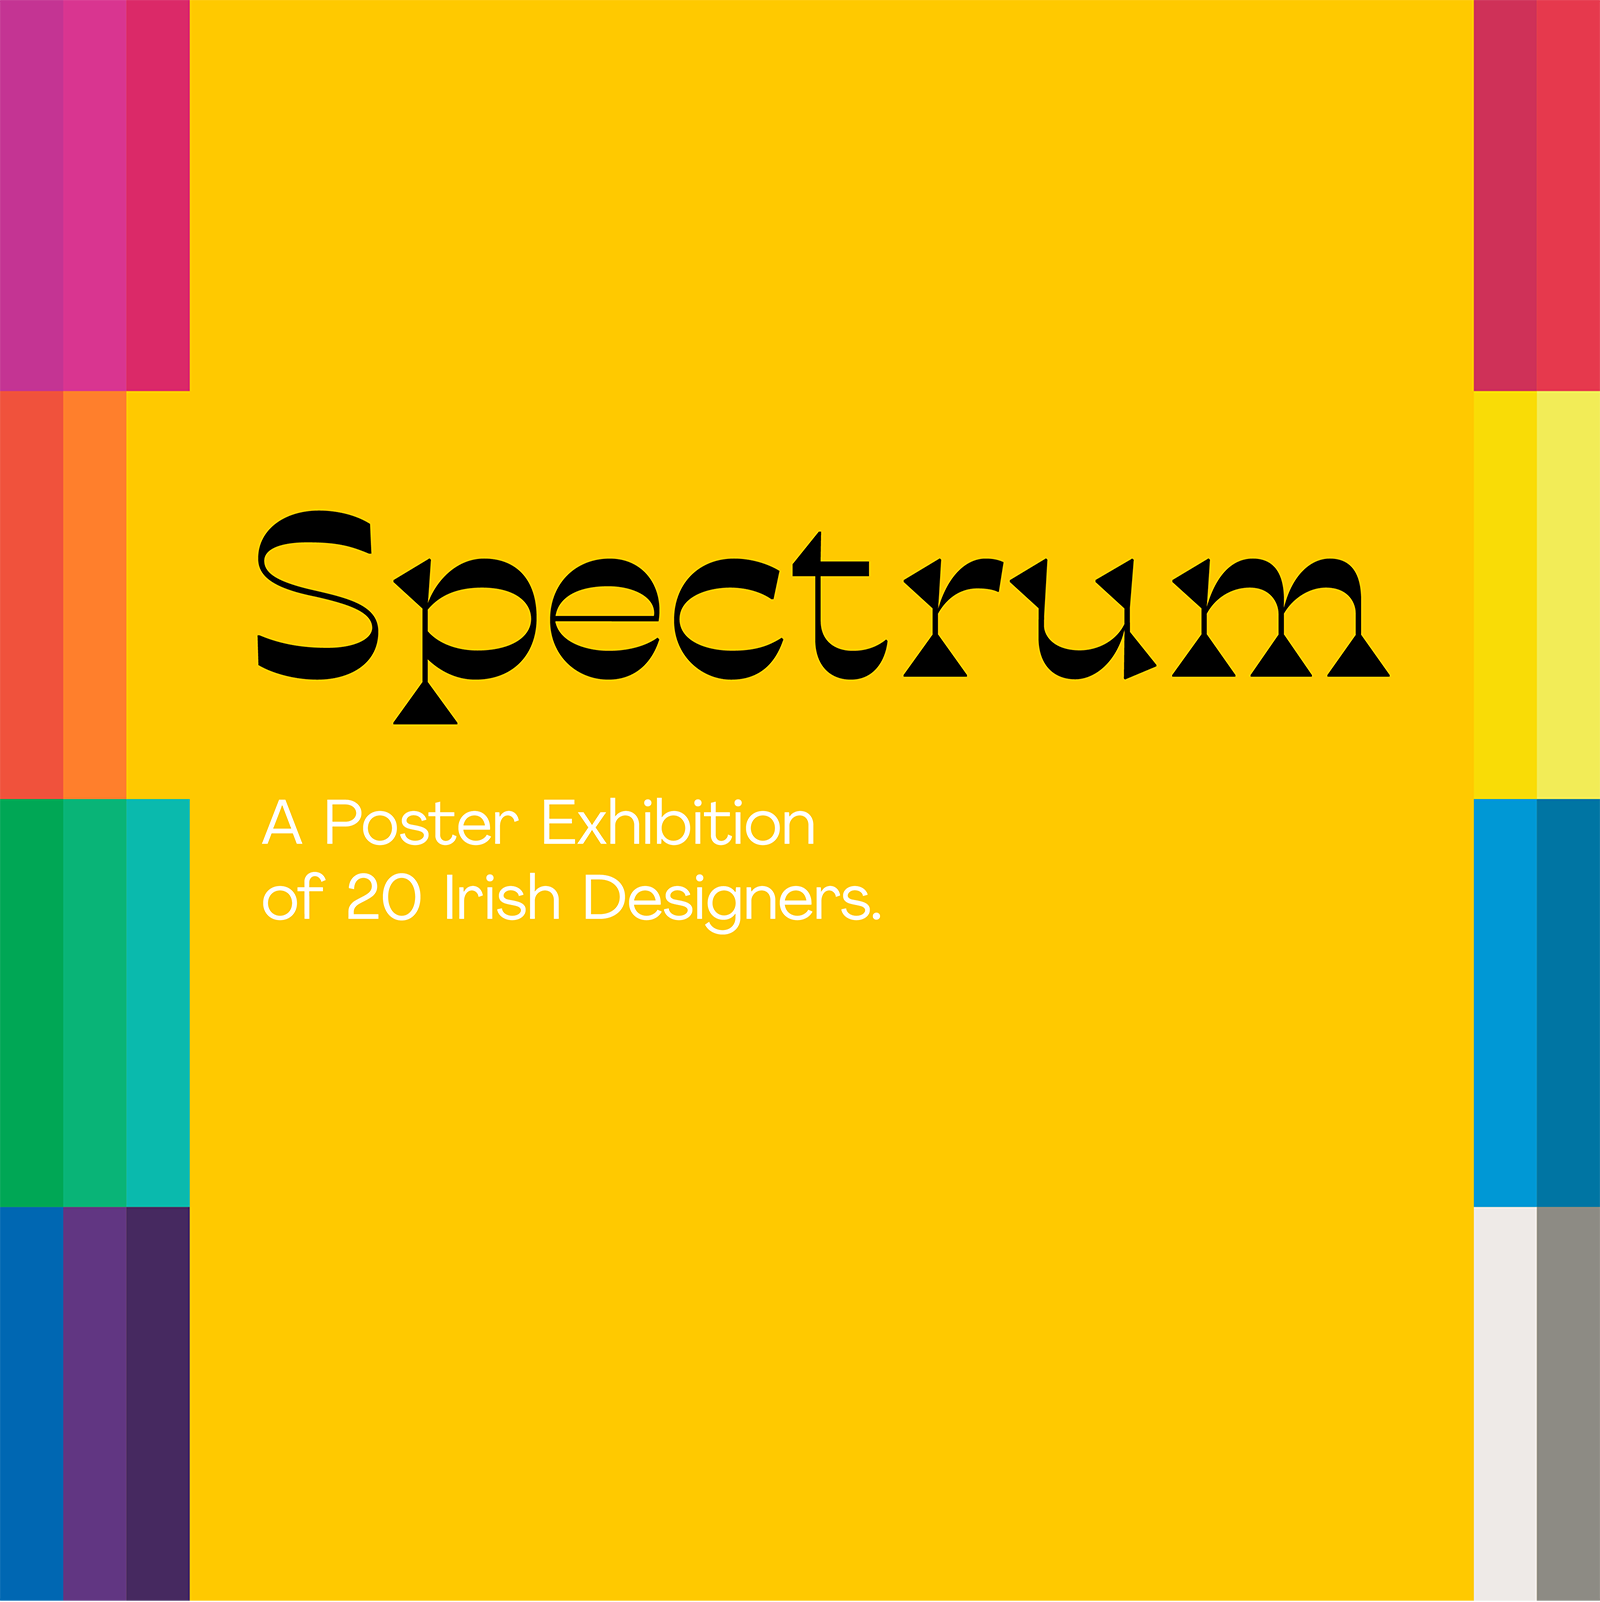 friday_march_29th_brspectrum_exhibition